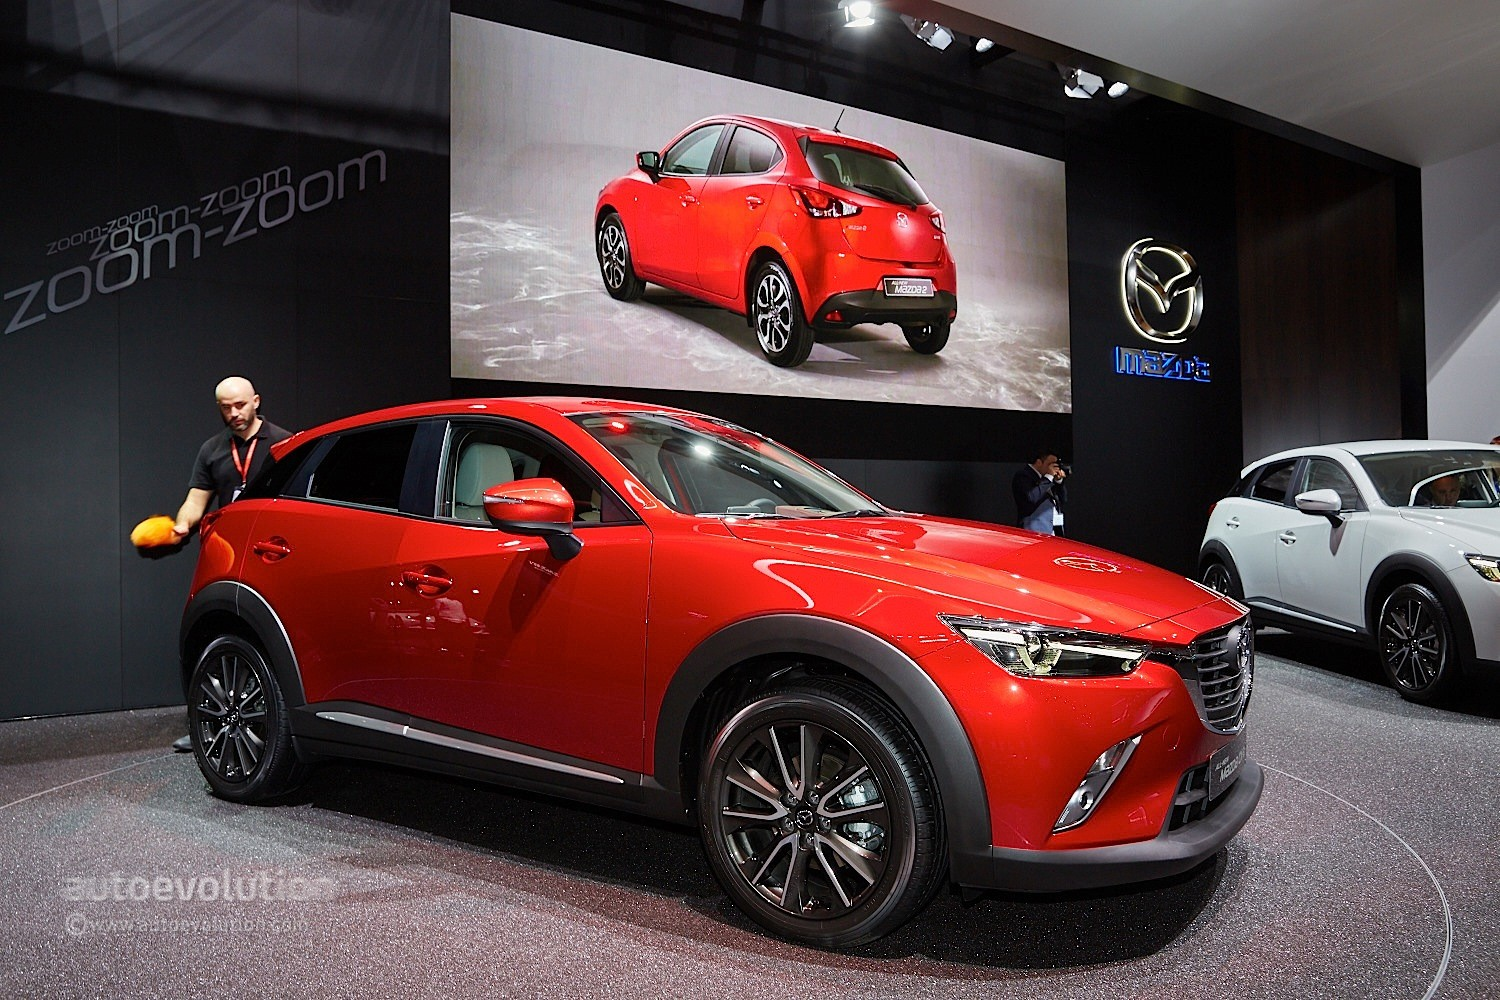 2016 mazda cx 3 fully revealed in geneva with 1 5l diesel video live photos autoevolution. Black Bedroom Furniture Sets. Home Design Ideas